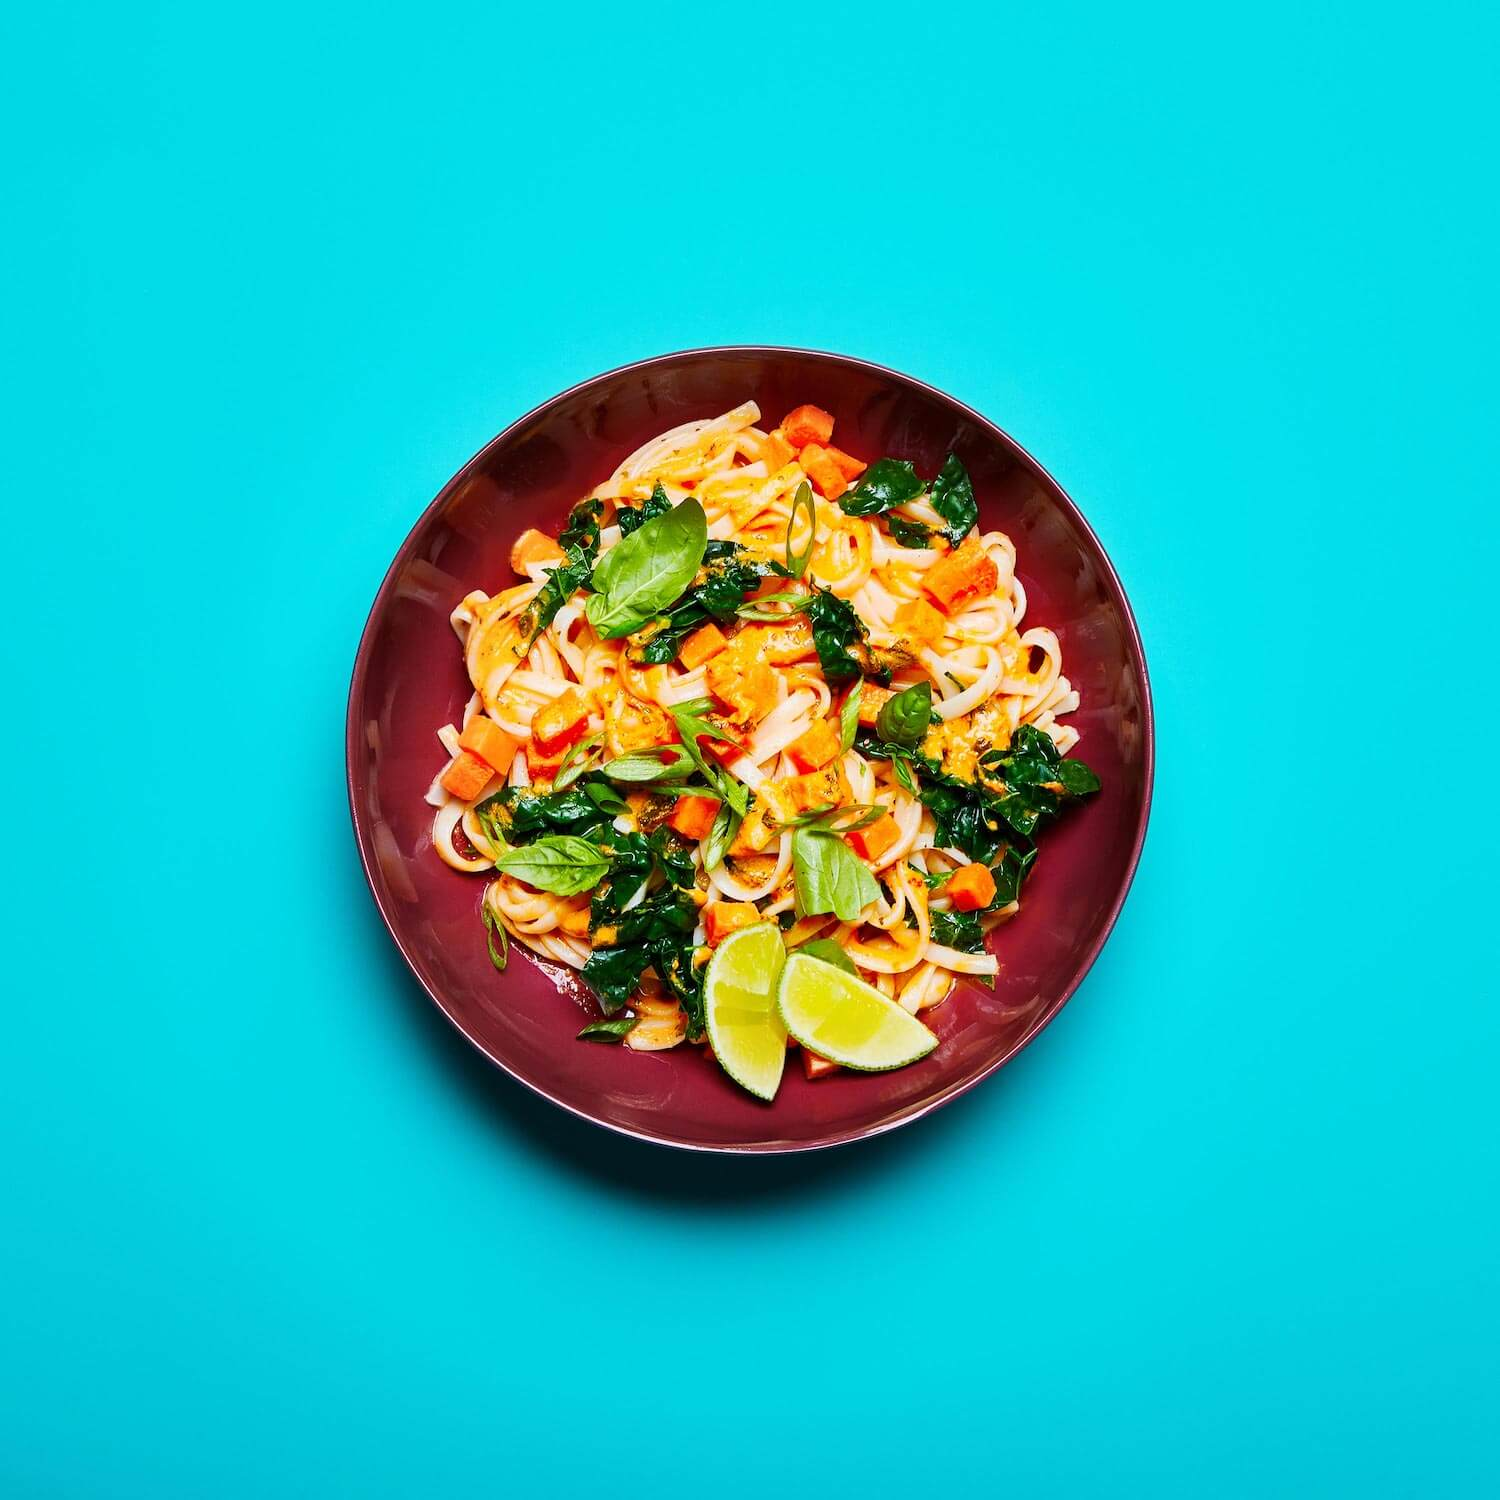 Red Curry Noodles in a dish on a blue background.